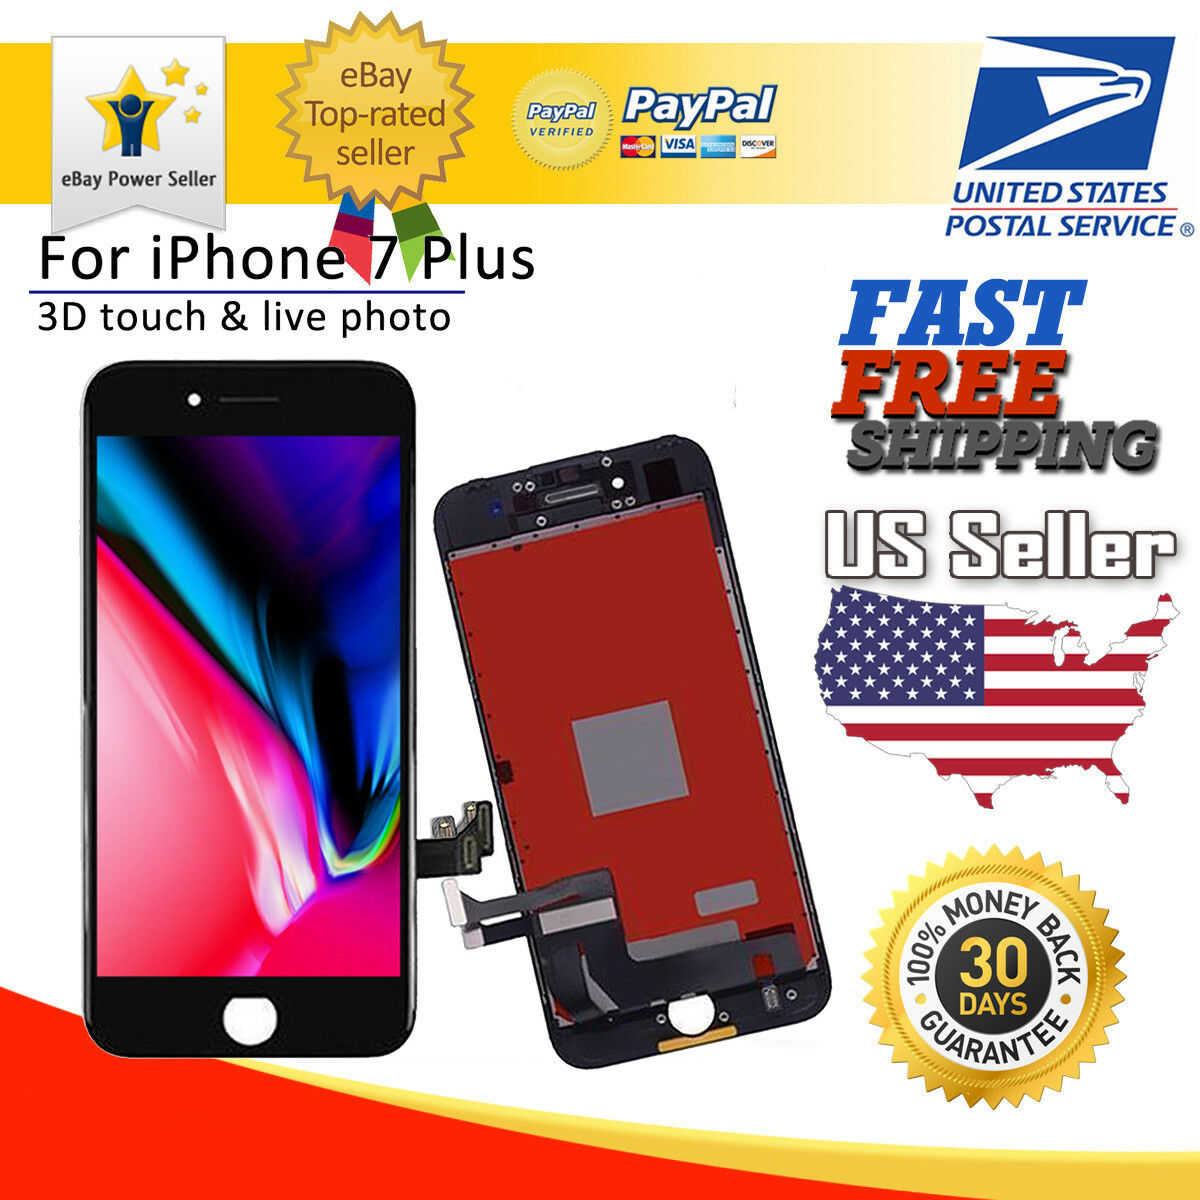 info for e4497 5a984 Details about Black LCD Display Touch Screen Display Replacement 3D Touch  For iPhone 7 Plus US